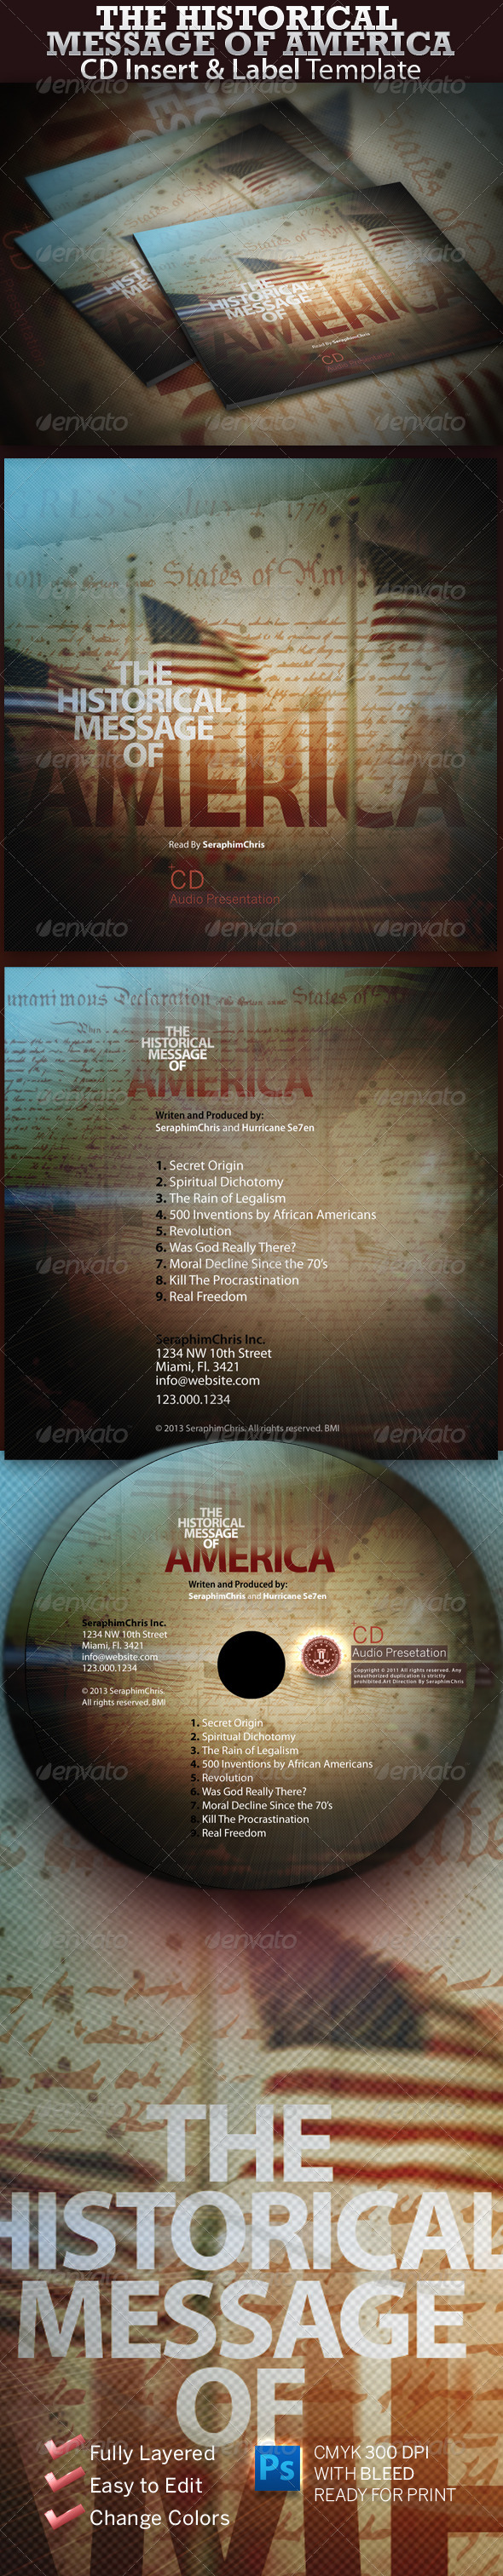 The Historical Message of America CD Insert - CD & DVD artwork Print Templates